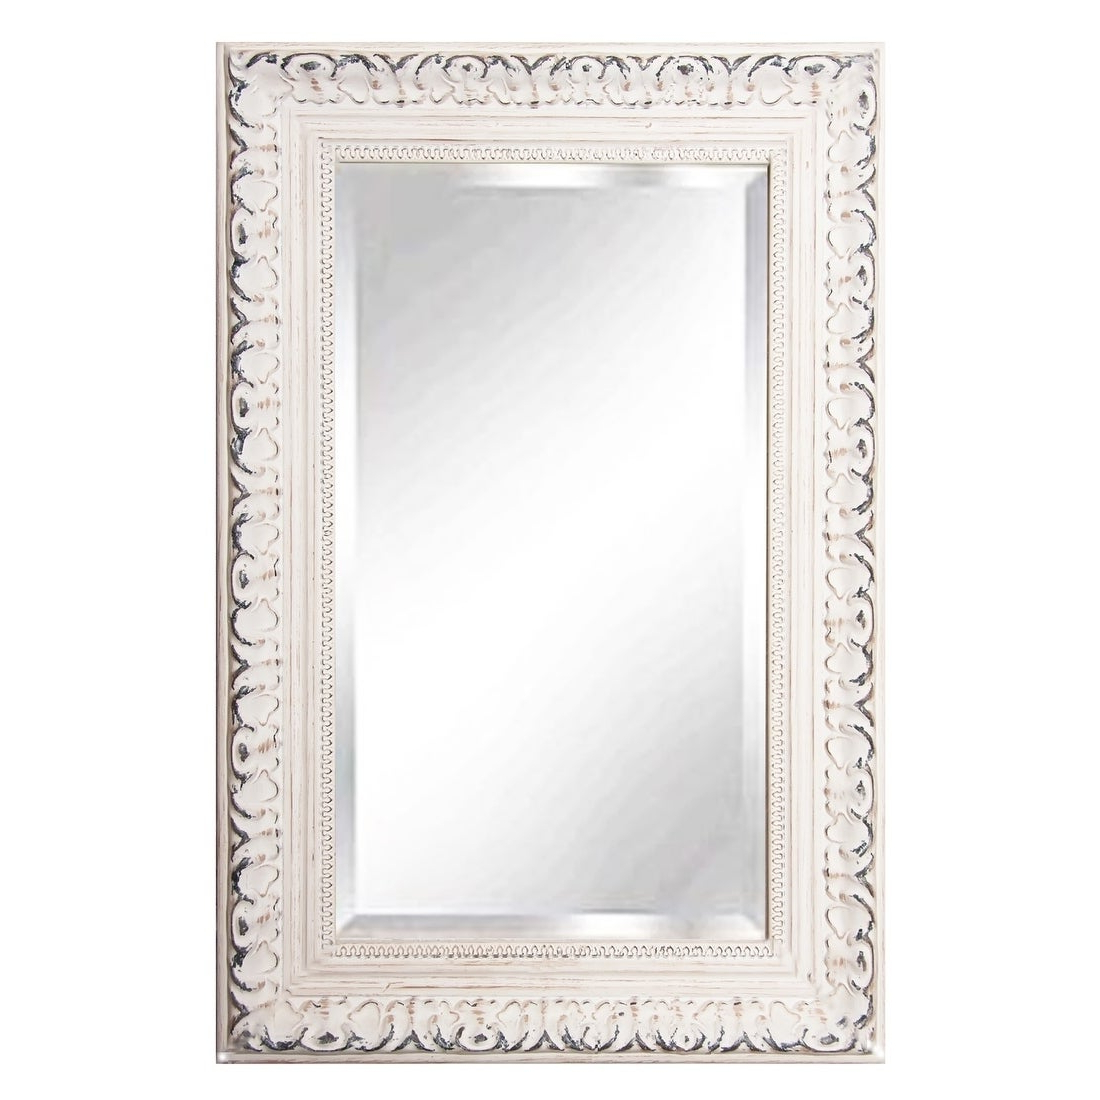 "Rayne Mirrors French Victorian White Rectangular Wall Mirror – 23.5""x (View 19 of 20)"